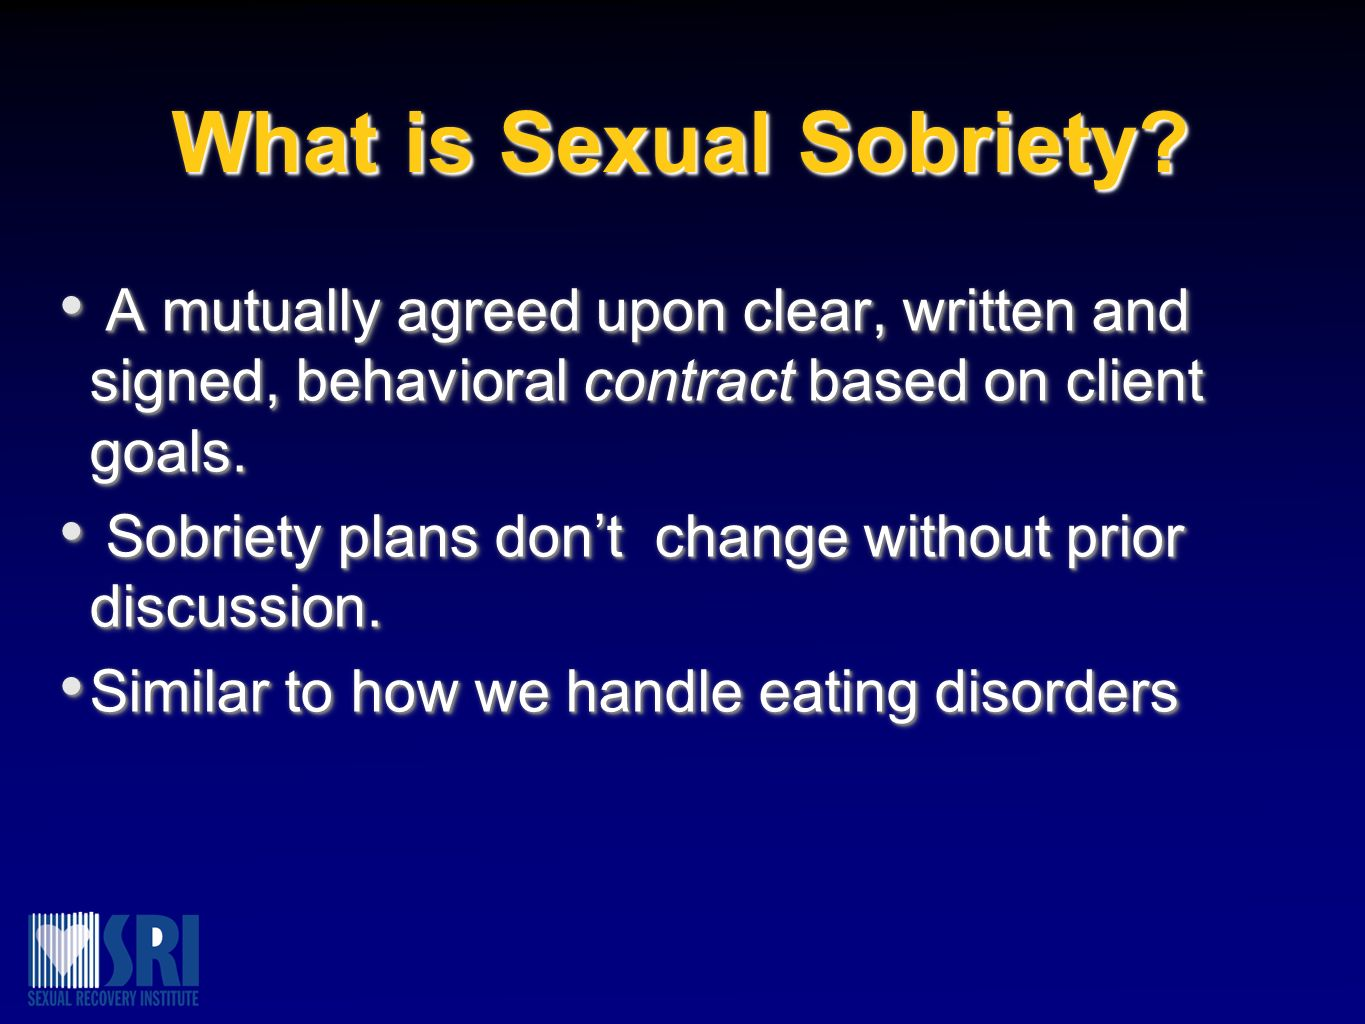 What is Sexual Sobriety